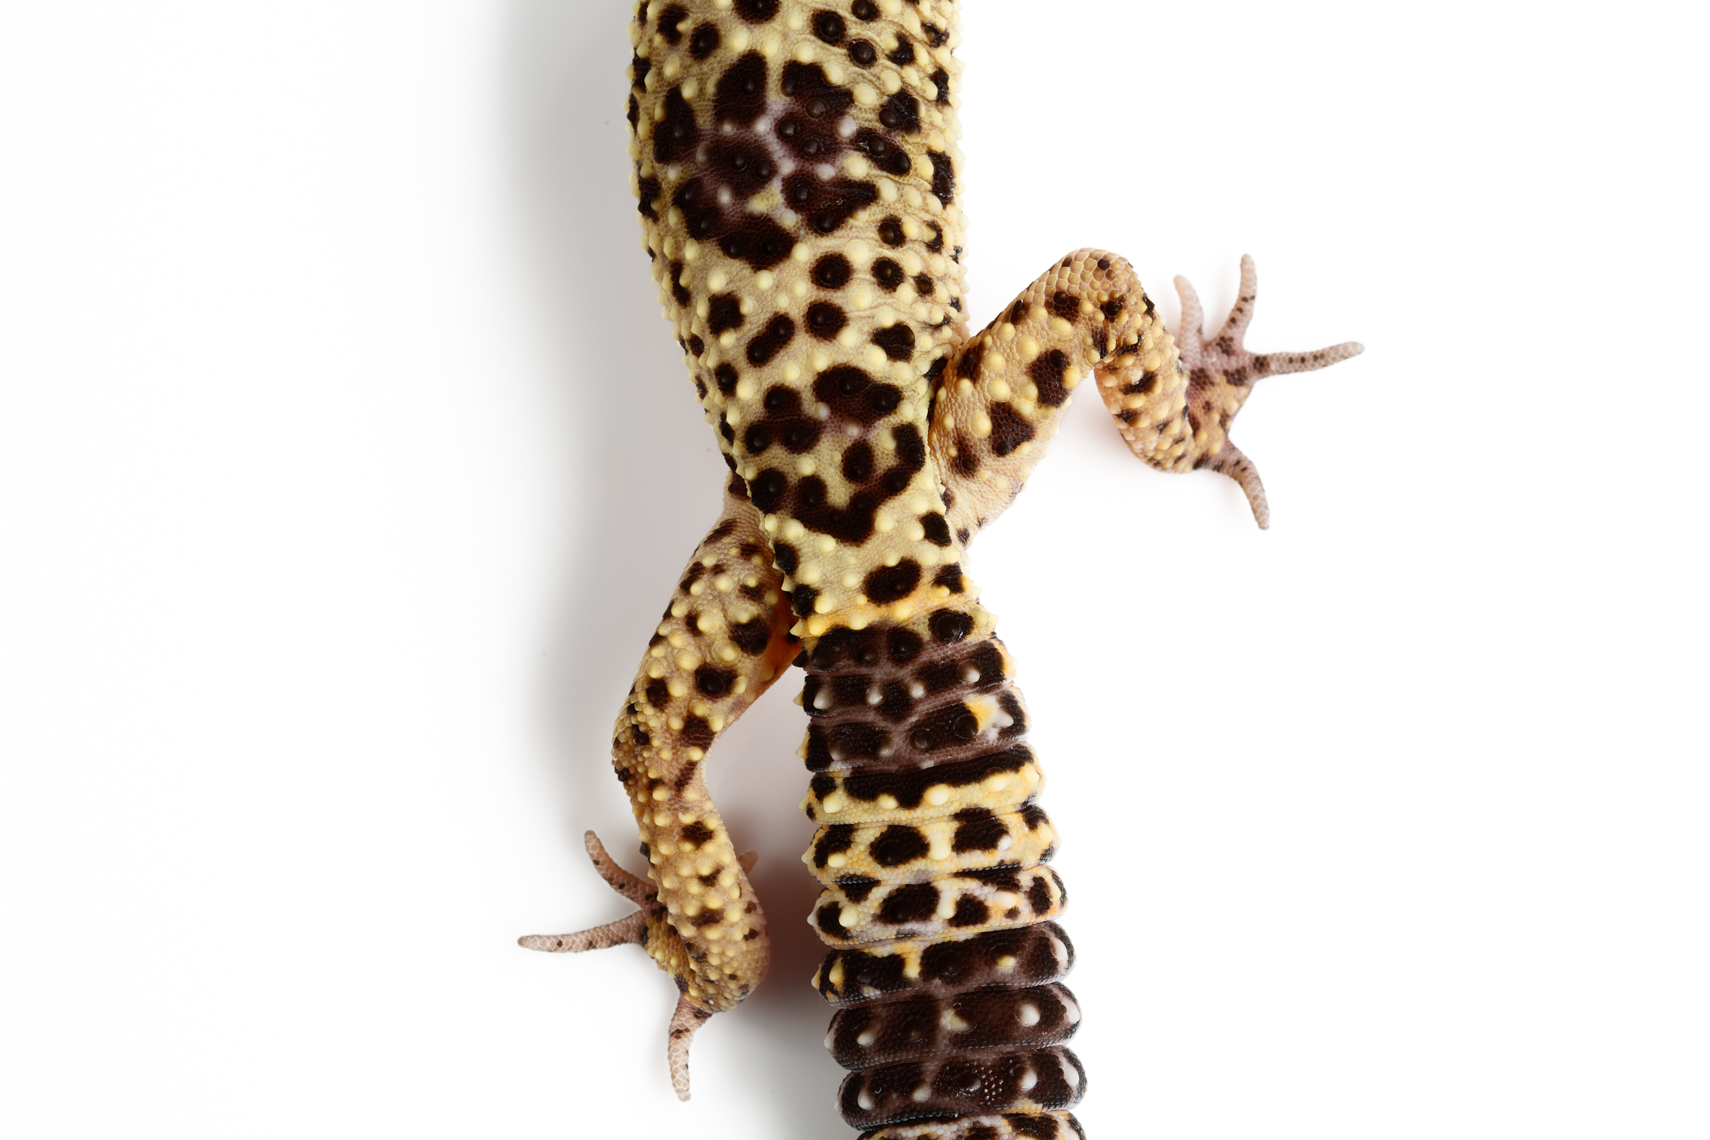 Leopard Geckos detail of tail